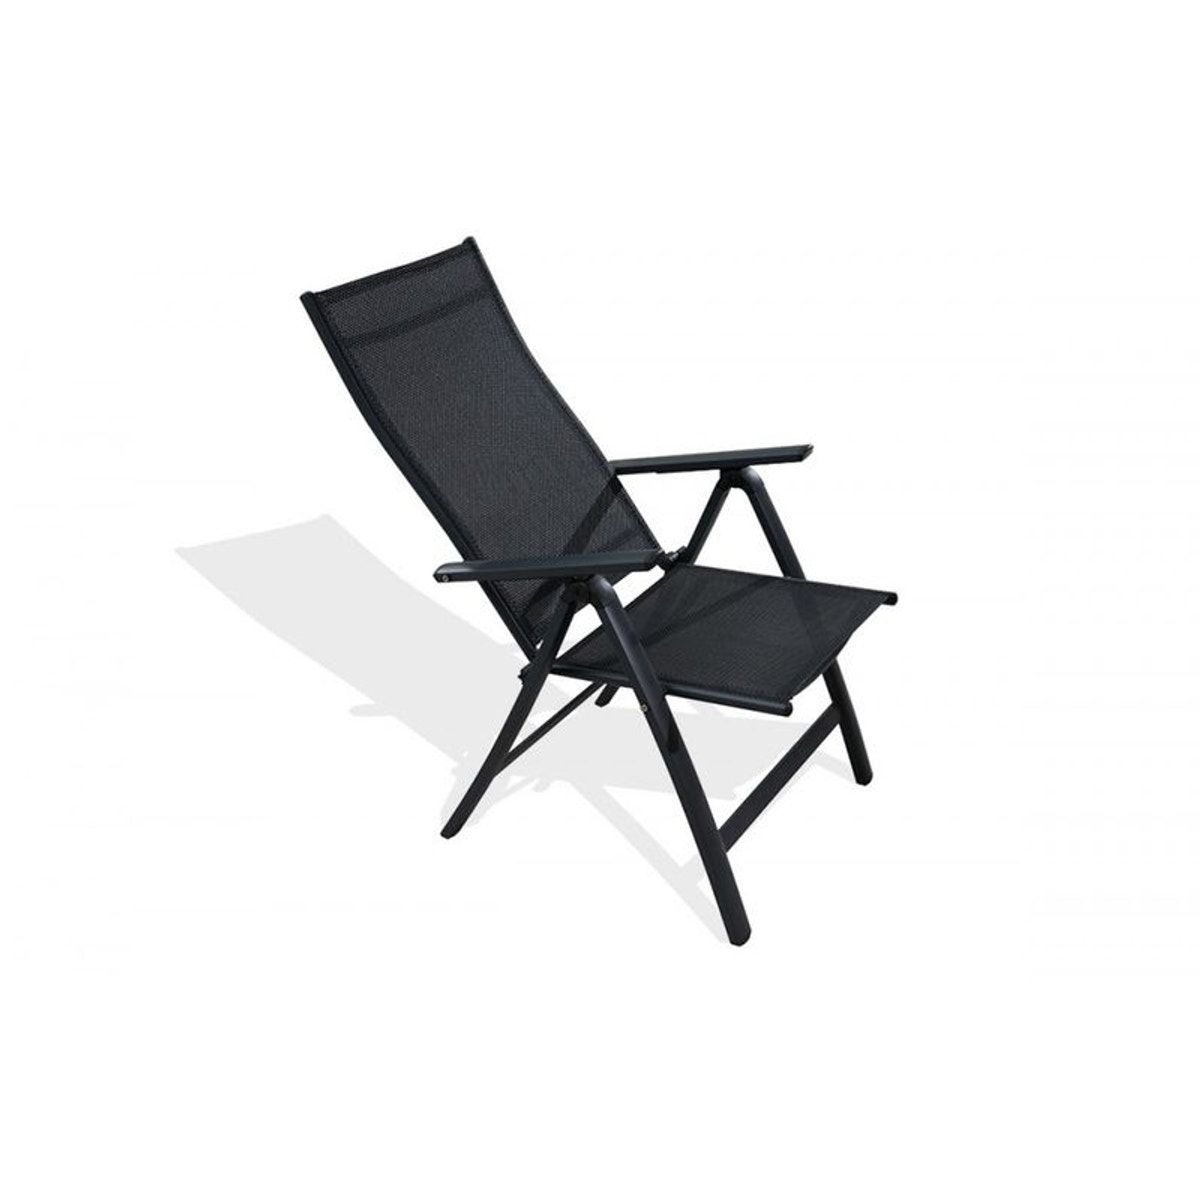 Chaise positionsProductsFauteuil multi jardin Chaise de fyv7g6Yb